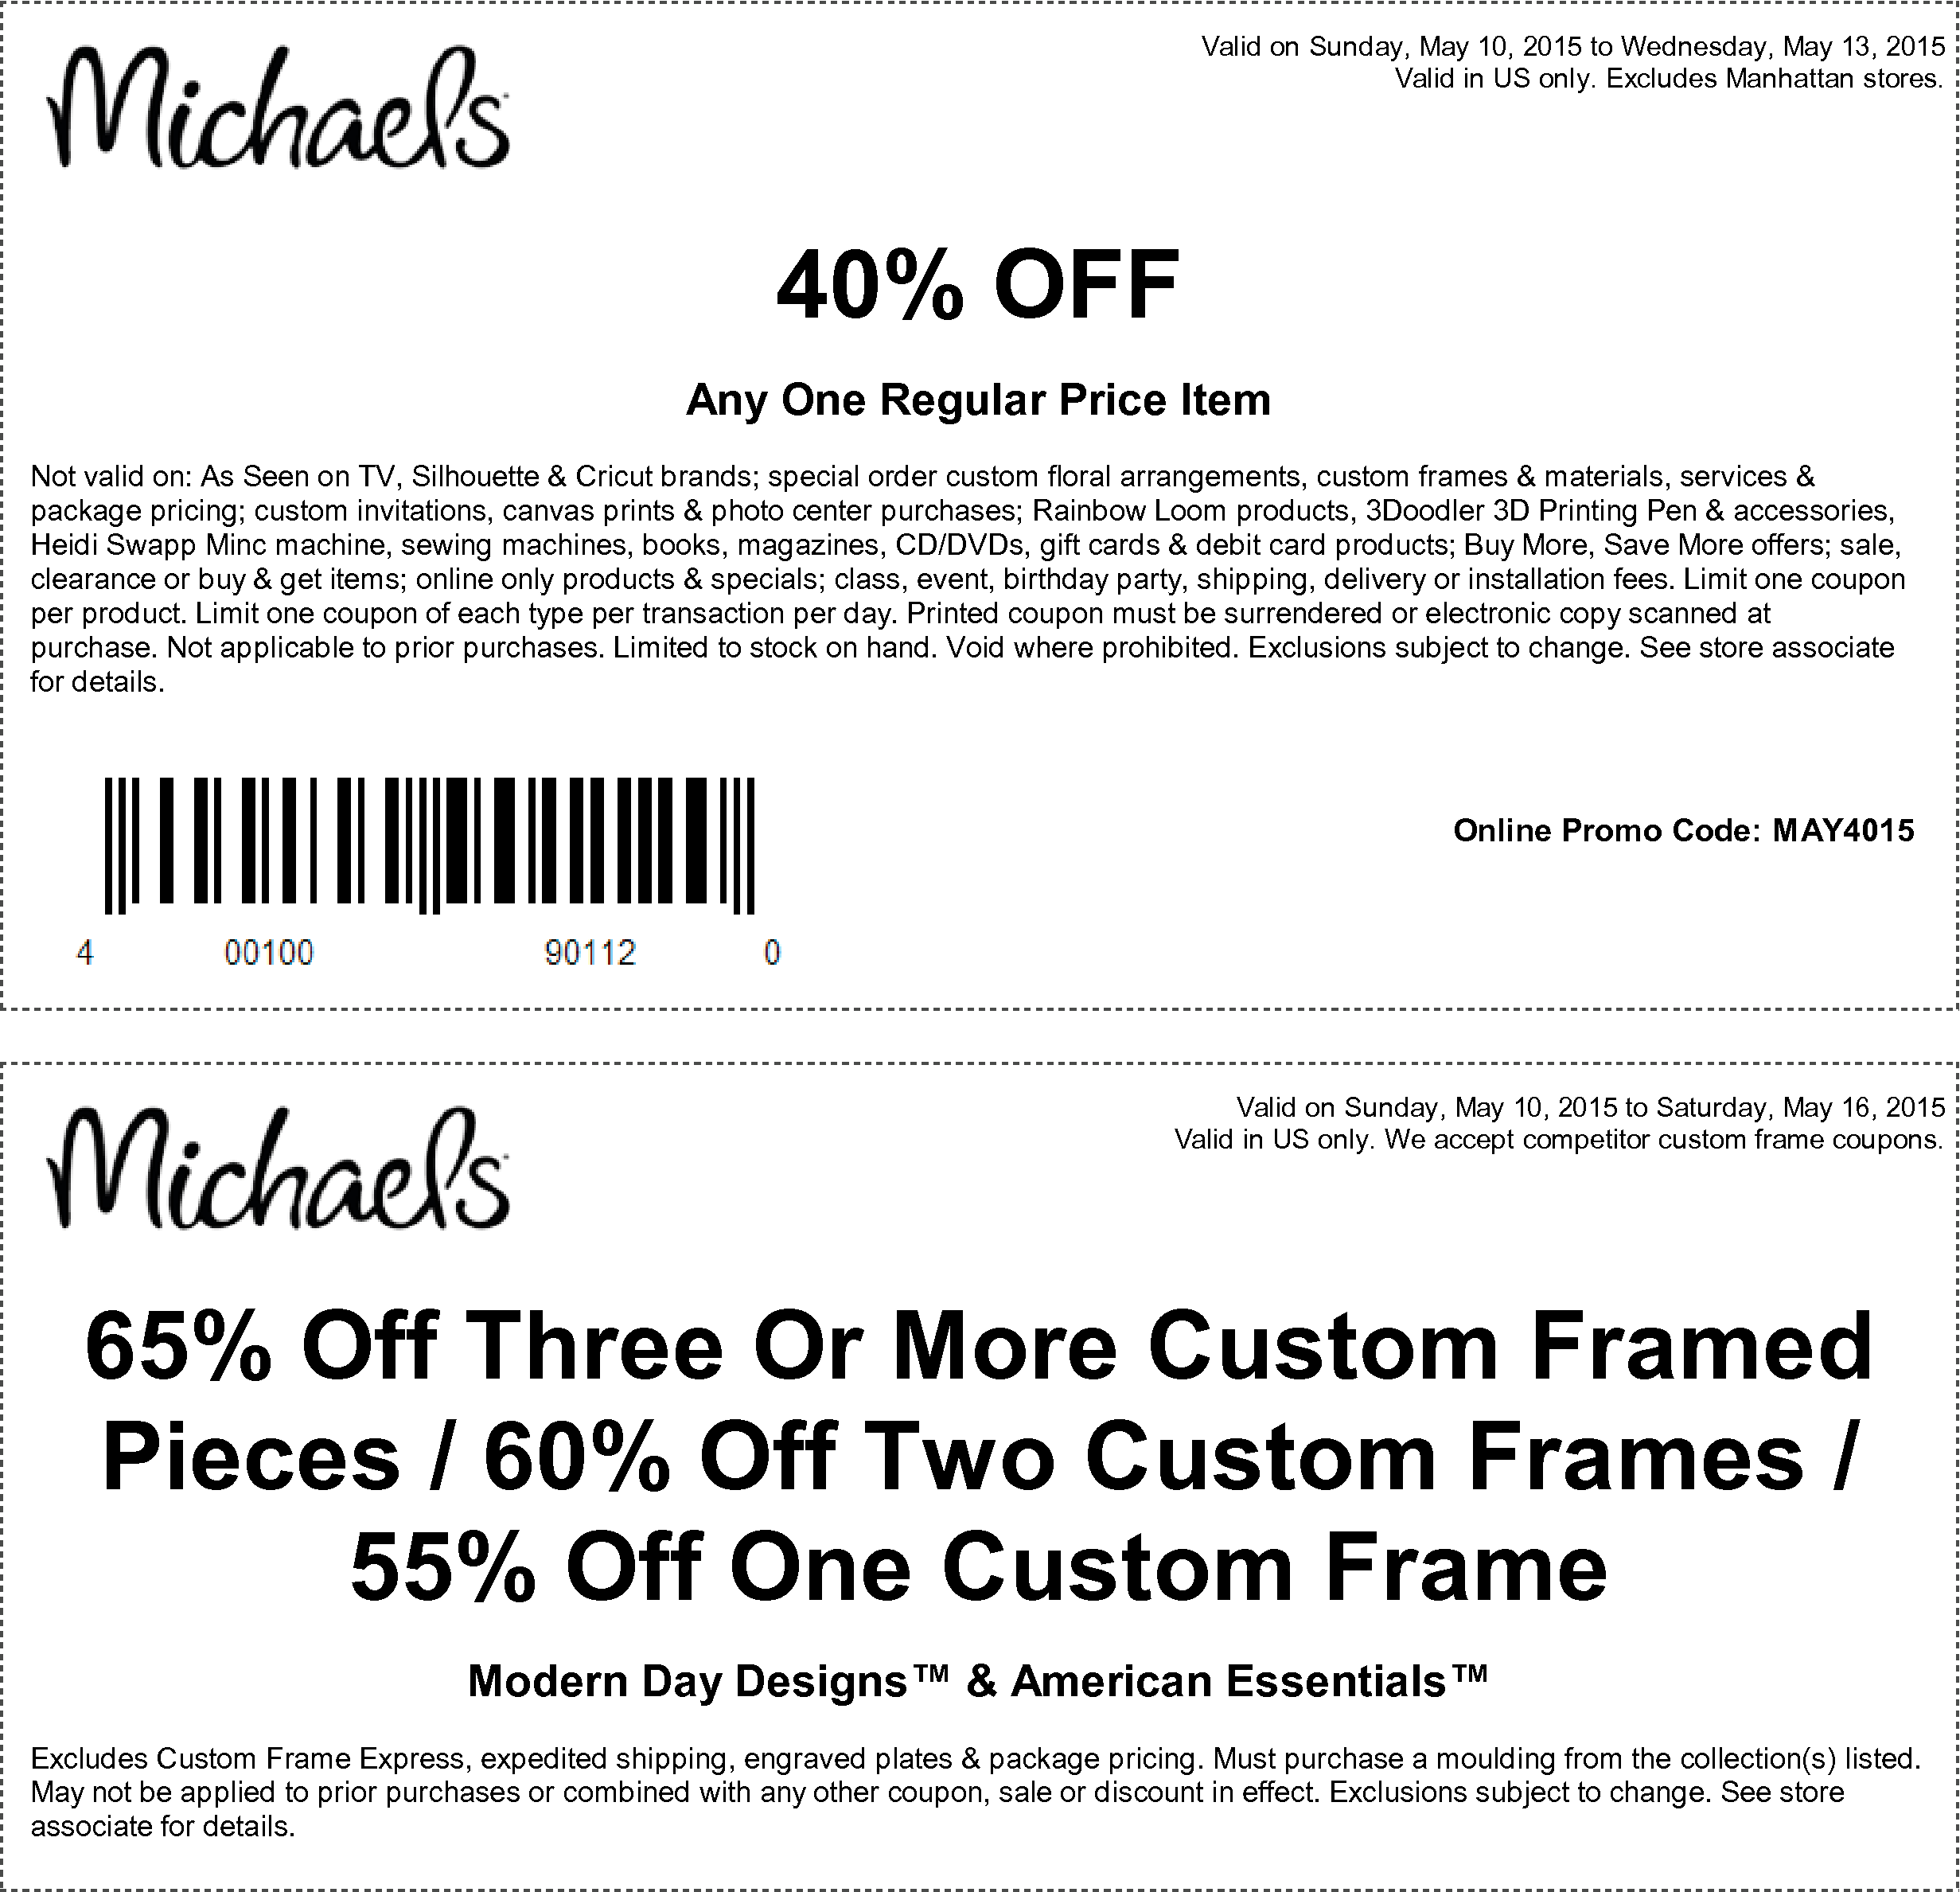 Michaels Coupon October 2018 40% off a single item at Michaels, or online via promo code MAY4015